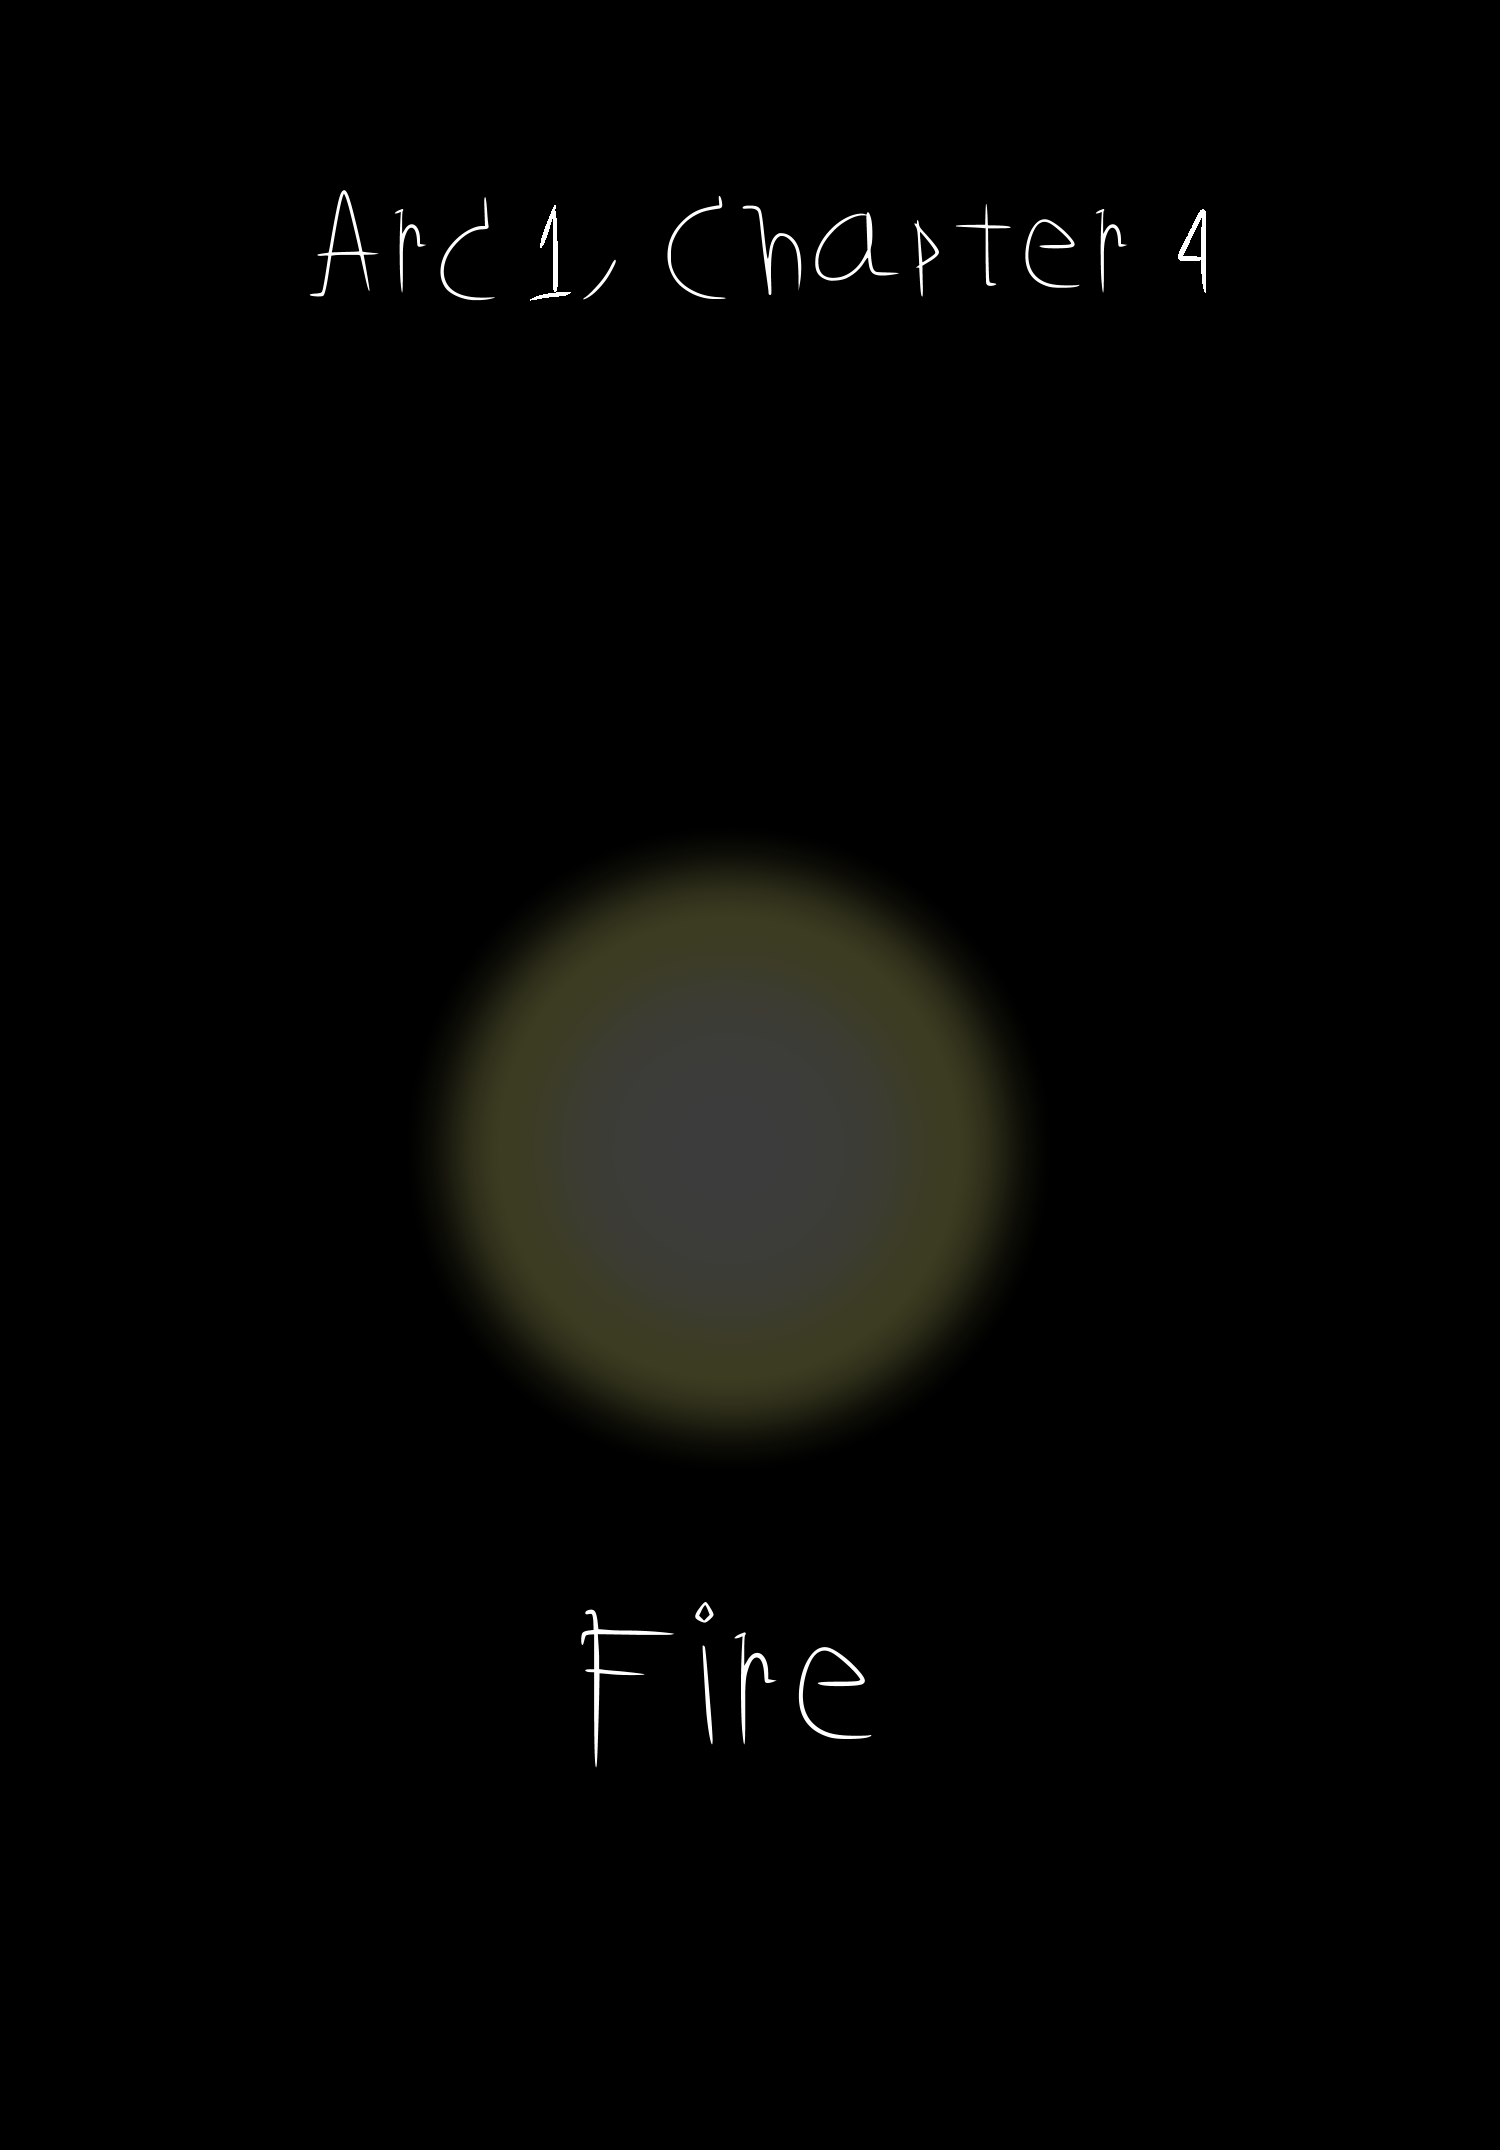 Chapter 4: Fire